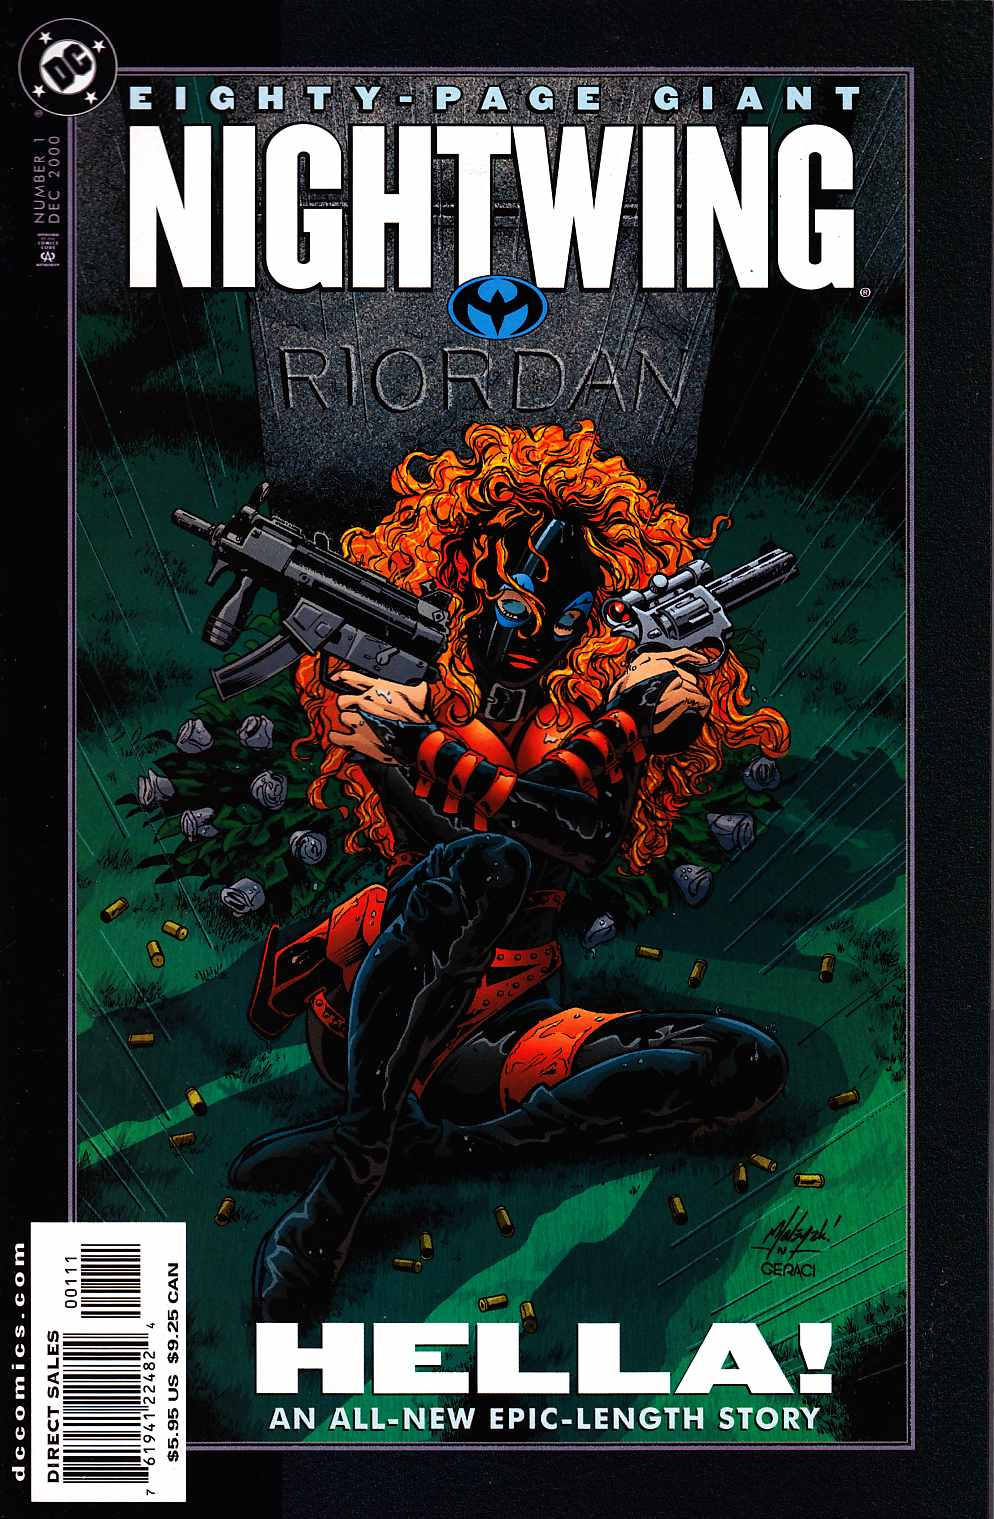 Nightwing 80 Page Giant #1 Near Mint (9.4) [DC Comic] LARGE